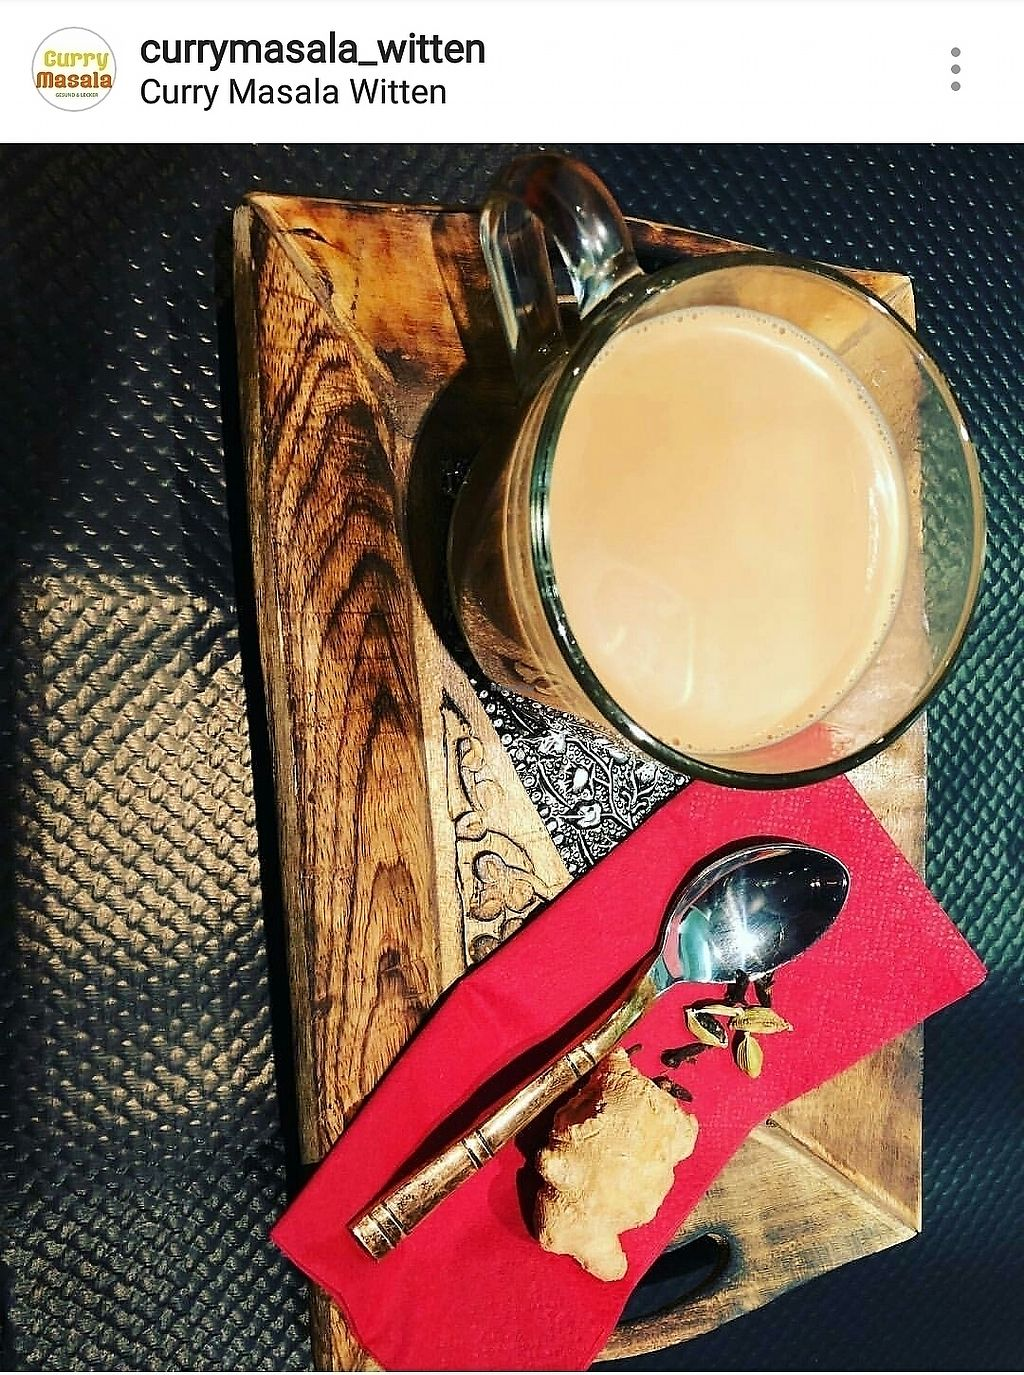 """Photo of Curry Masala  by <a href=""""/members/profile/anupbkc"""">anupbkc</a> <br/>our chai tee :-) <br/> March 6, 2018  - <a href='/contact/abuse/image/112899/367339'>Report</a>"""